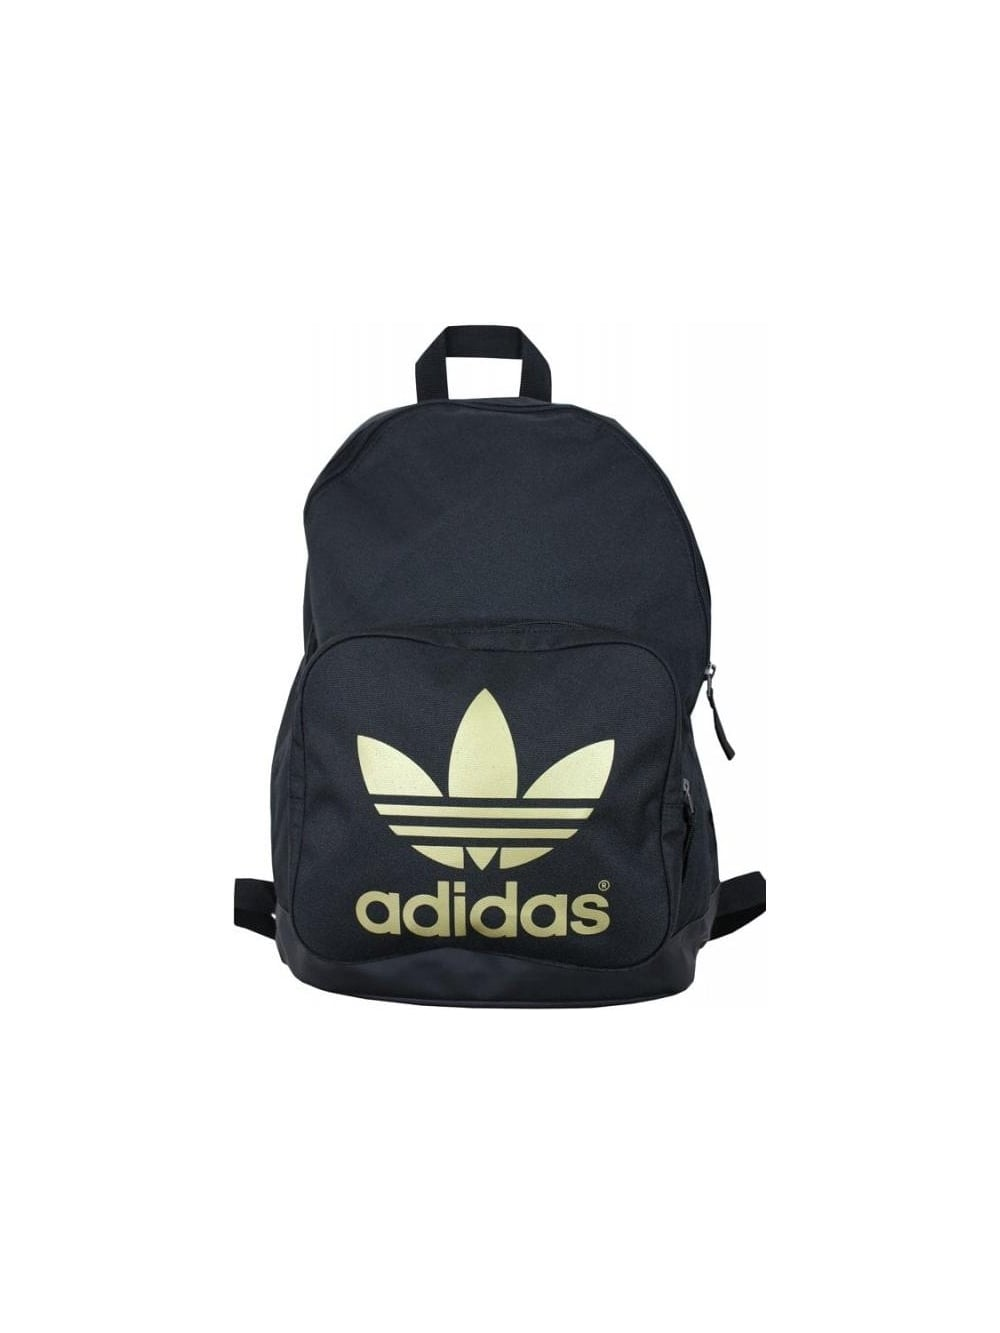 1c3d0d36d4947 Adidas Originals AC Classic Backpack in Black Gold - Northern Threads